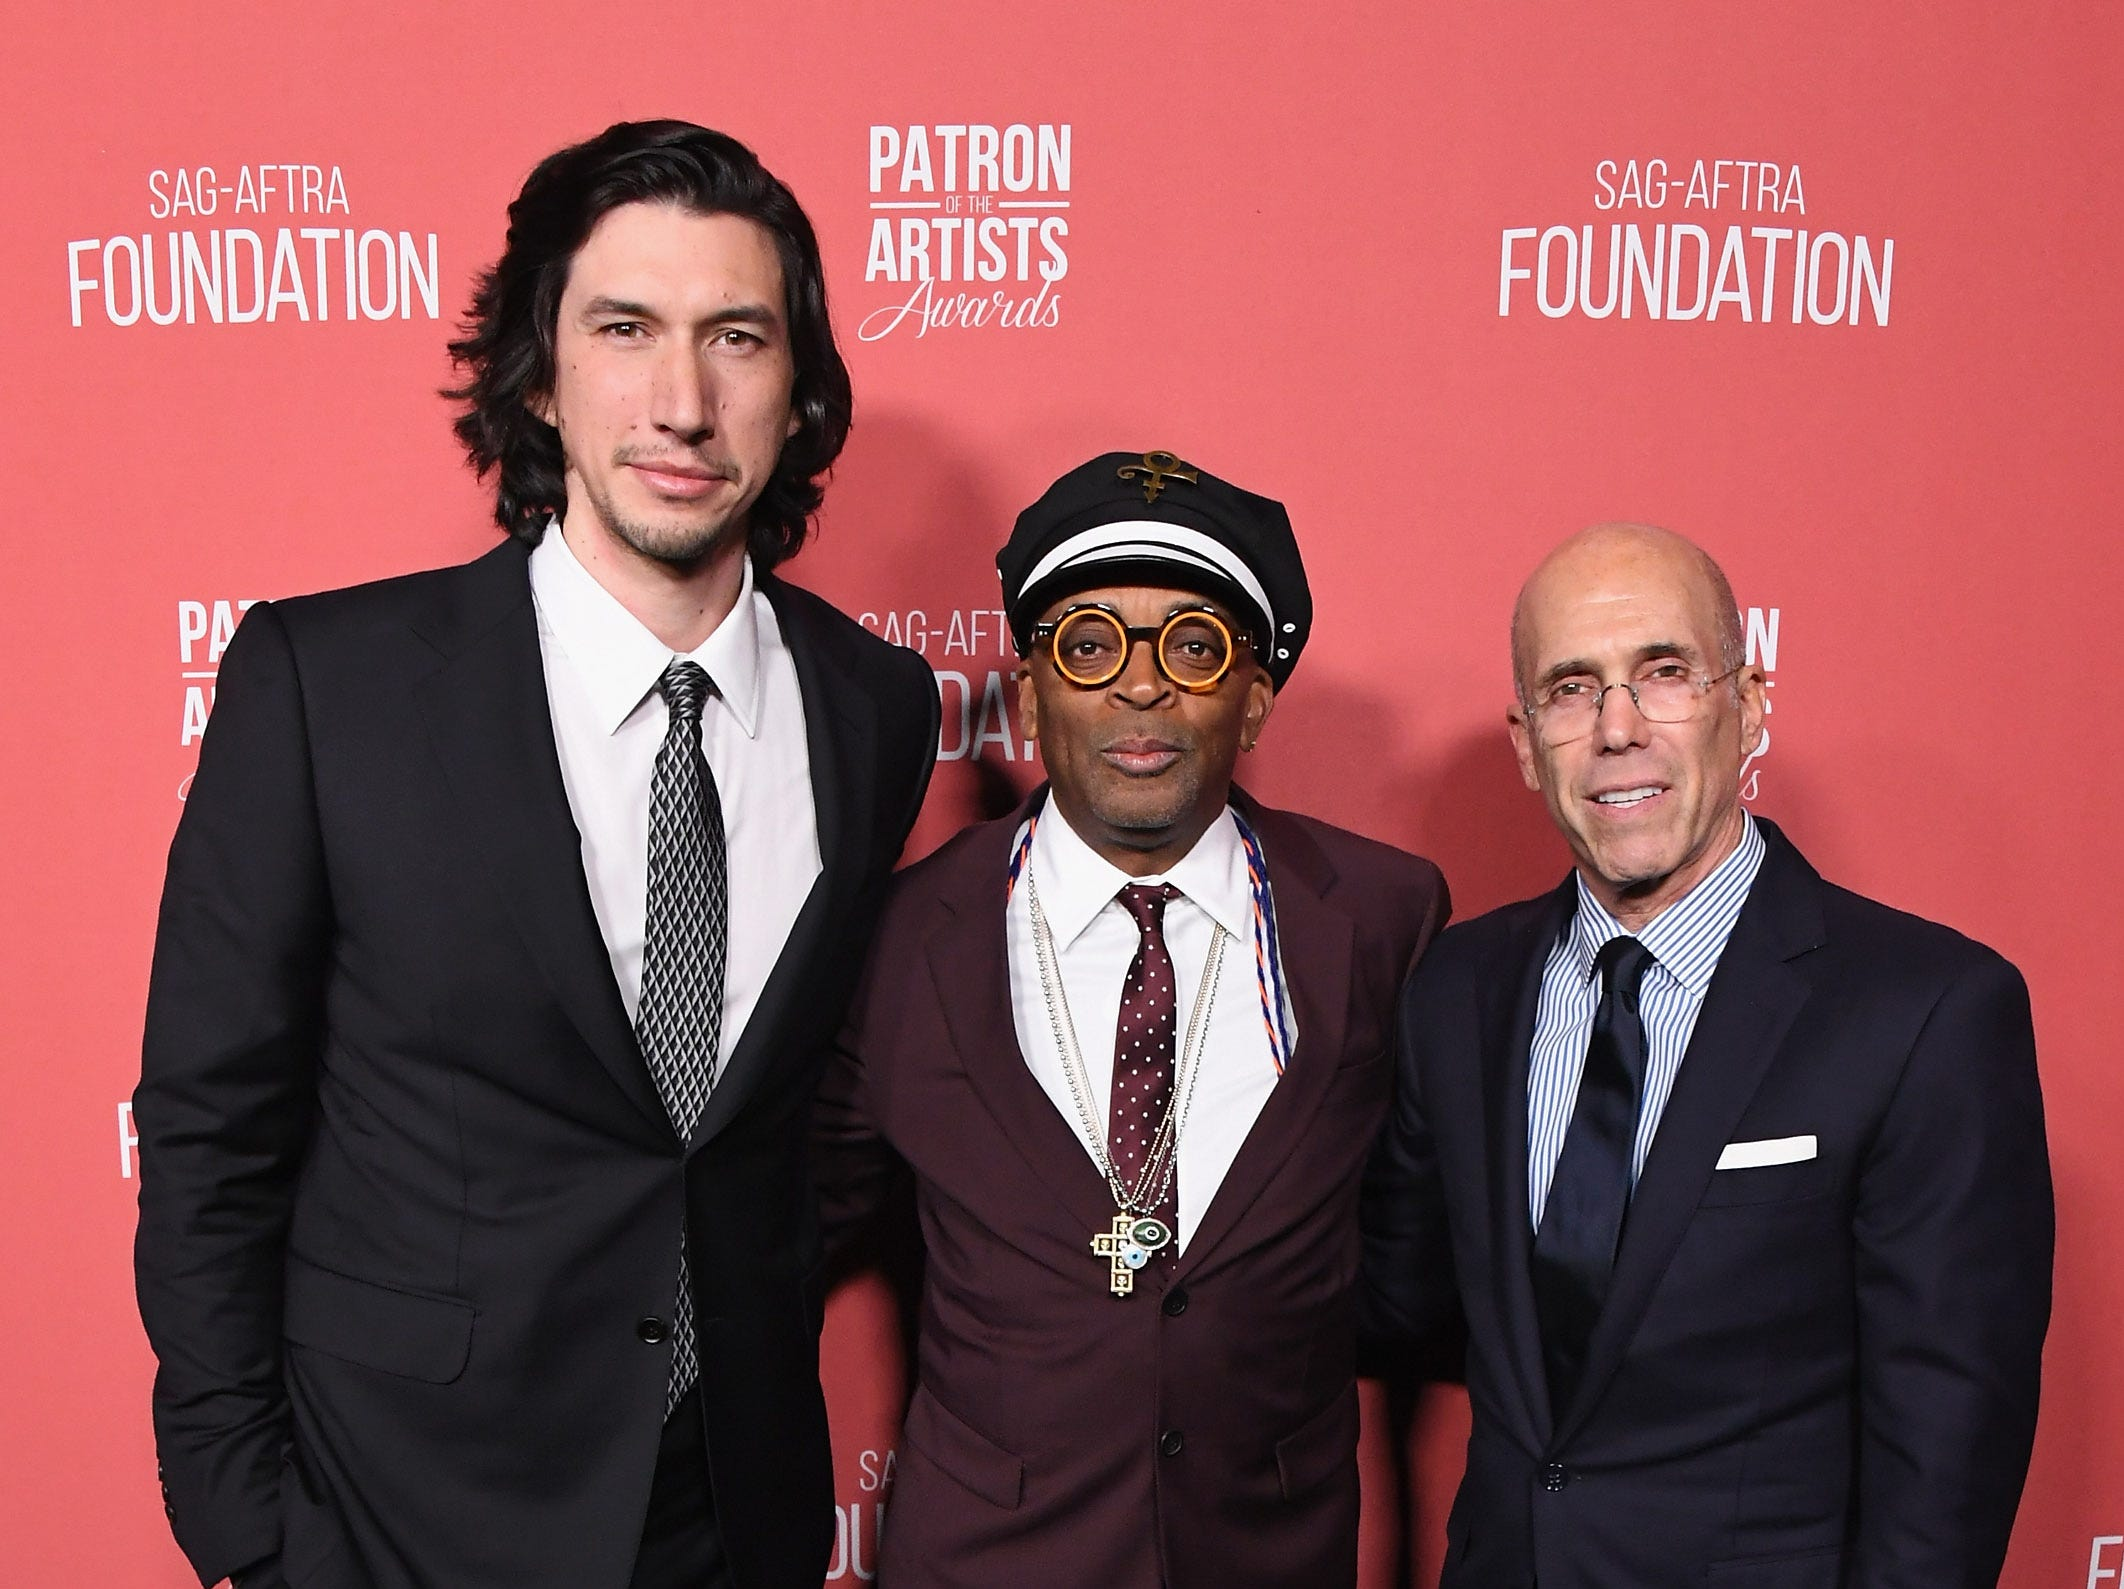 BEVERLY HILLS, CA - NOVEMBER 08:  Adam Driver, Spike Lee and Jeffrey Katzenberg attend SAG-AFTRA Foundation's 3rd Annual Patron Of The Artists Awards at Wallis Annenberg Center for the Performing Arts on November 8, 2018 in Beverly Hills, California.  (Photo by Jon Kopaloff/FilmMagic) ORG XMIT: 775233471 ORIG FILE ID: 1059469916